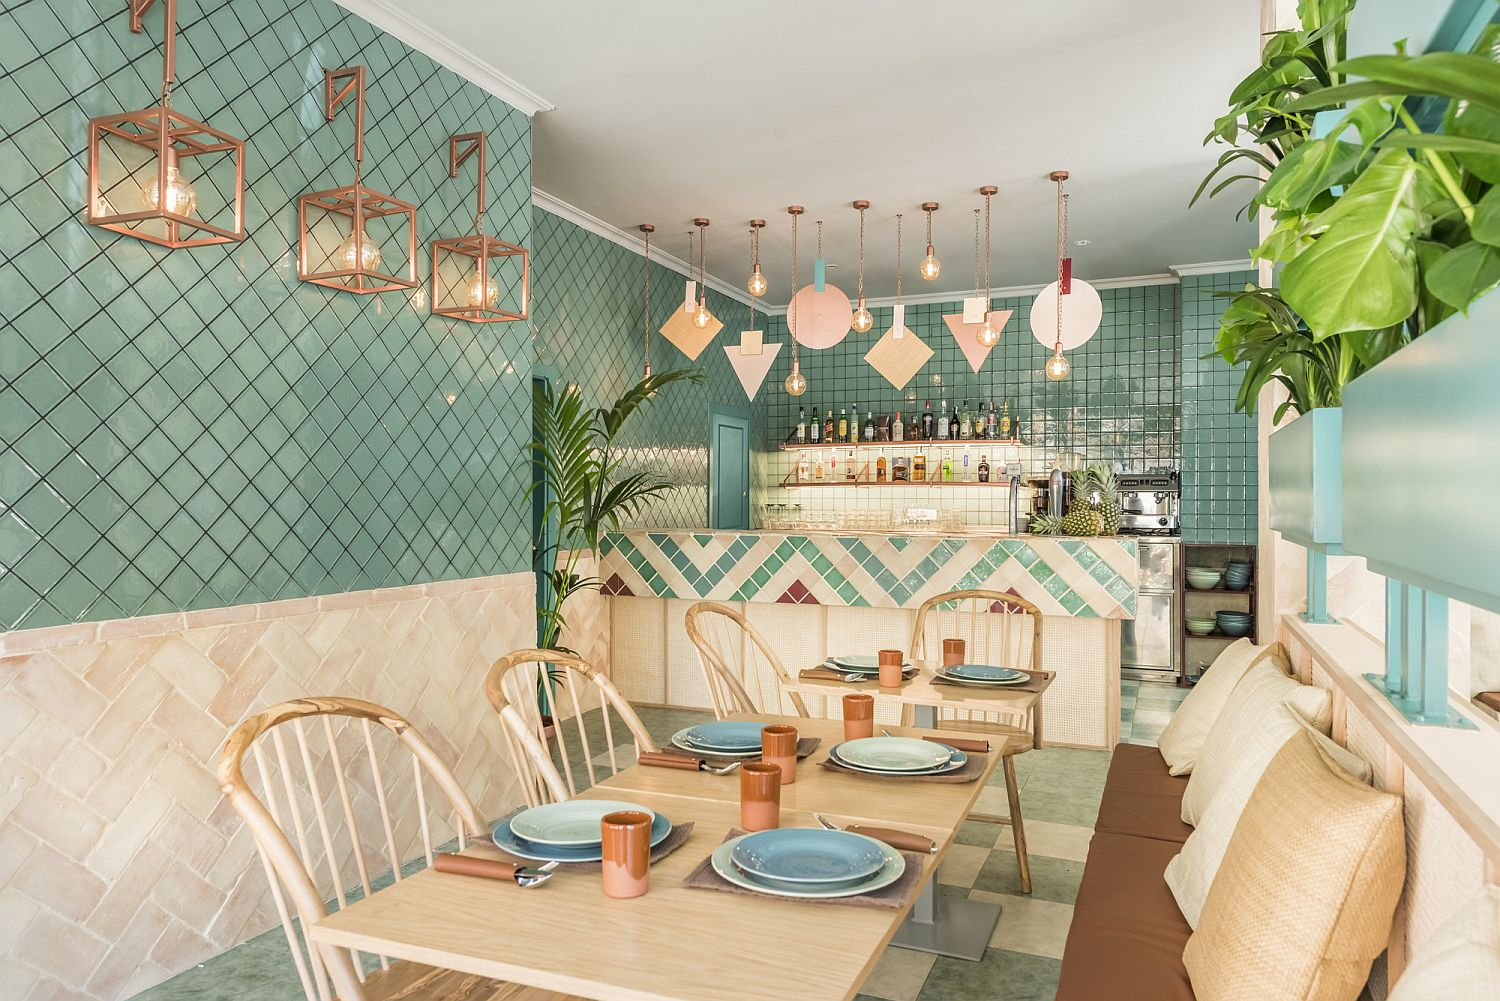 Creative pizzeria in Valencia full of color and personality